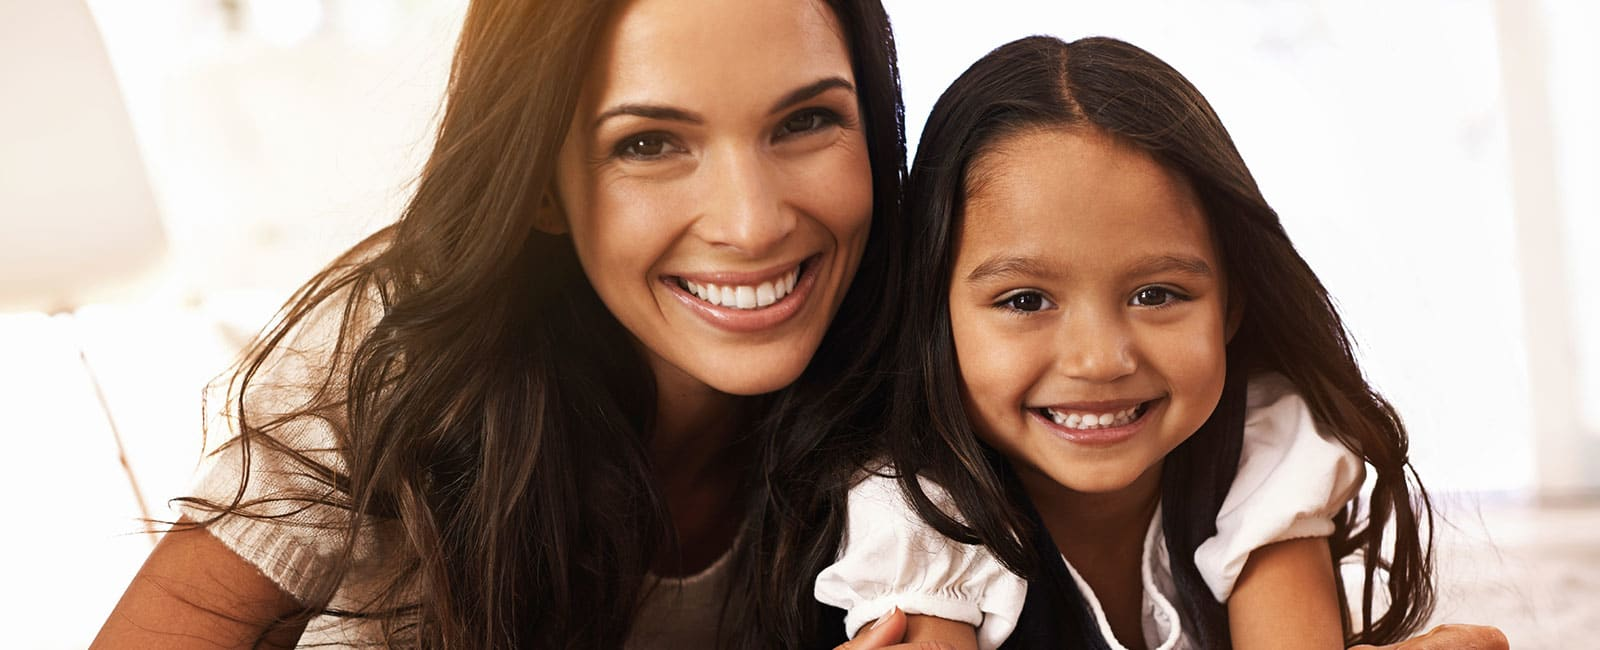 Family Dentist, Courtenay, Childrens Services